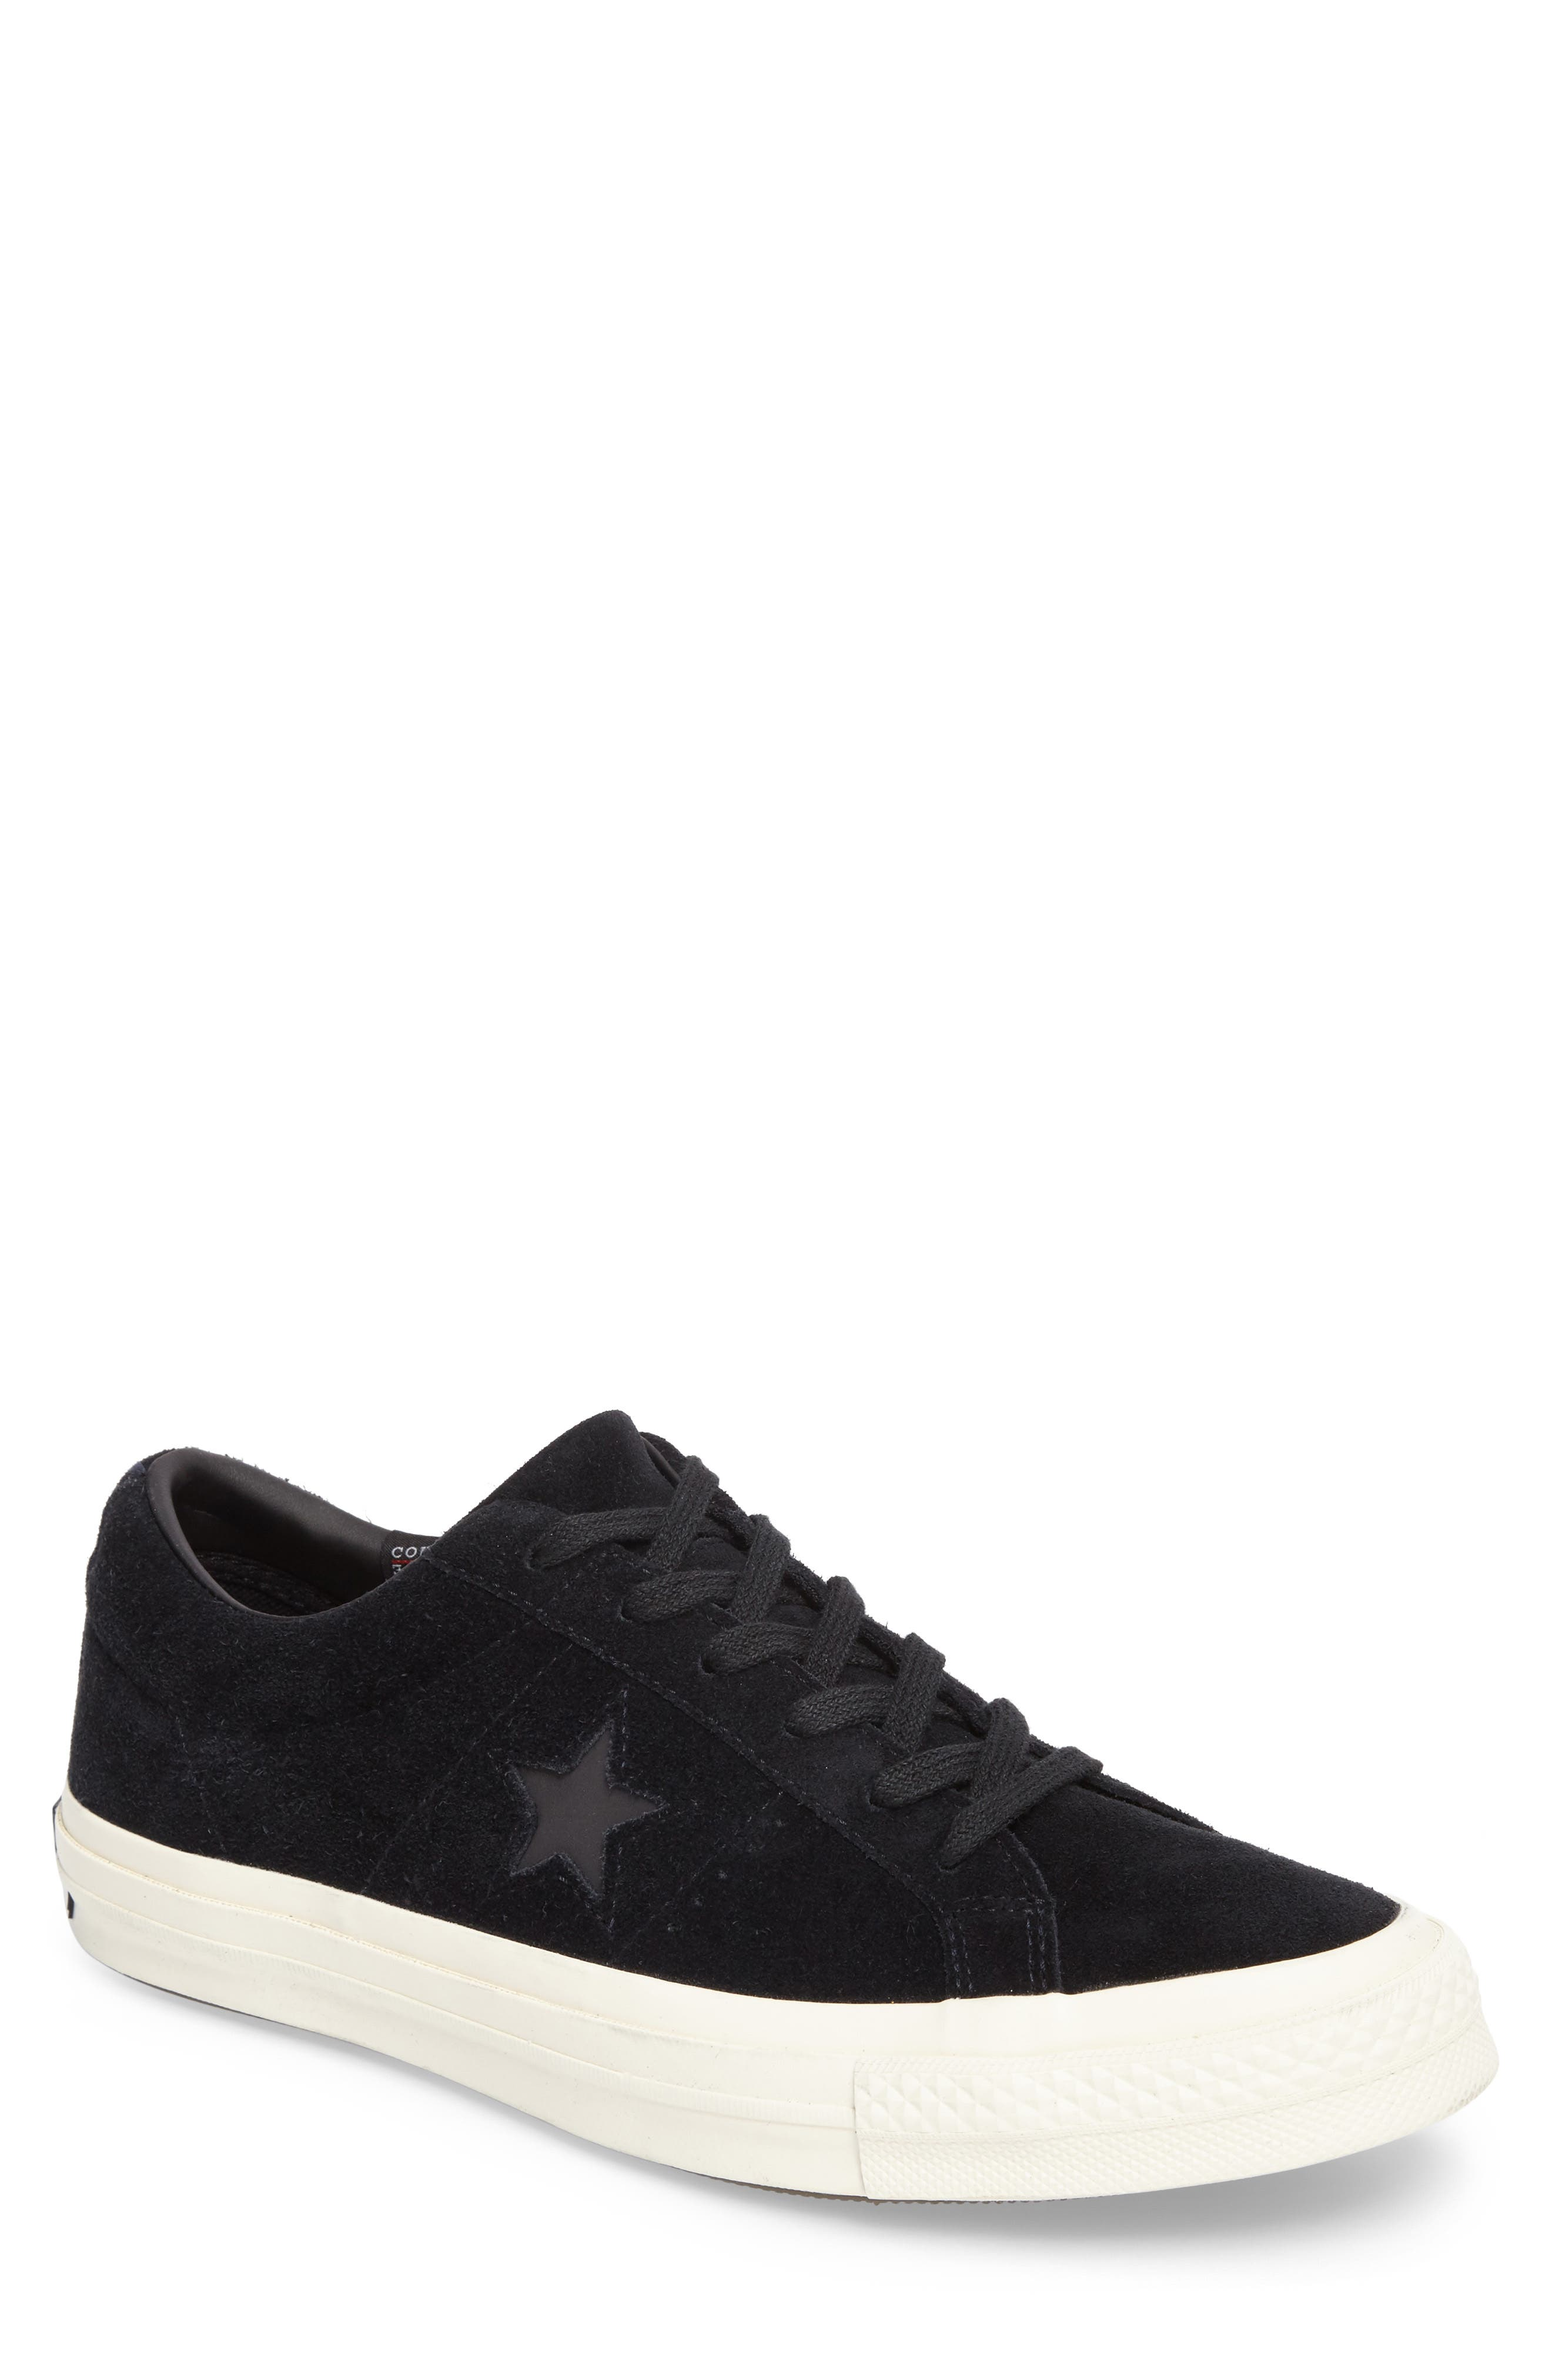 Alternate Image 1 Selected - Converse One Star Sneaker (Men)